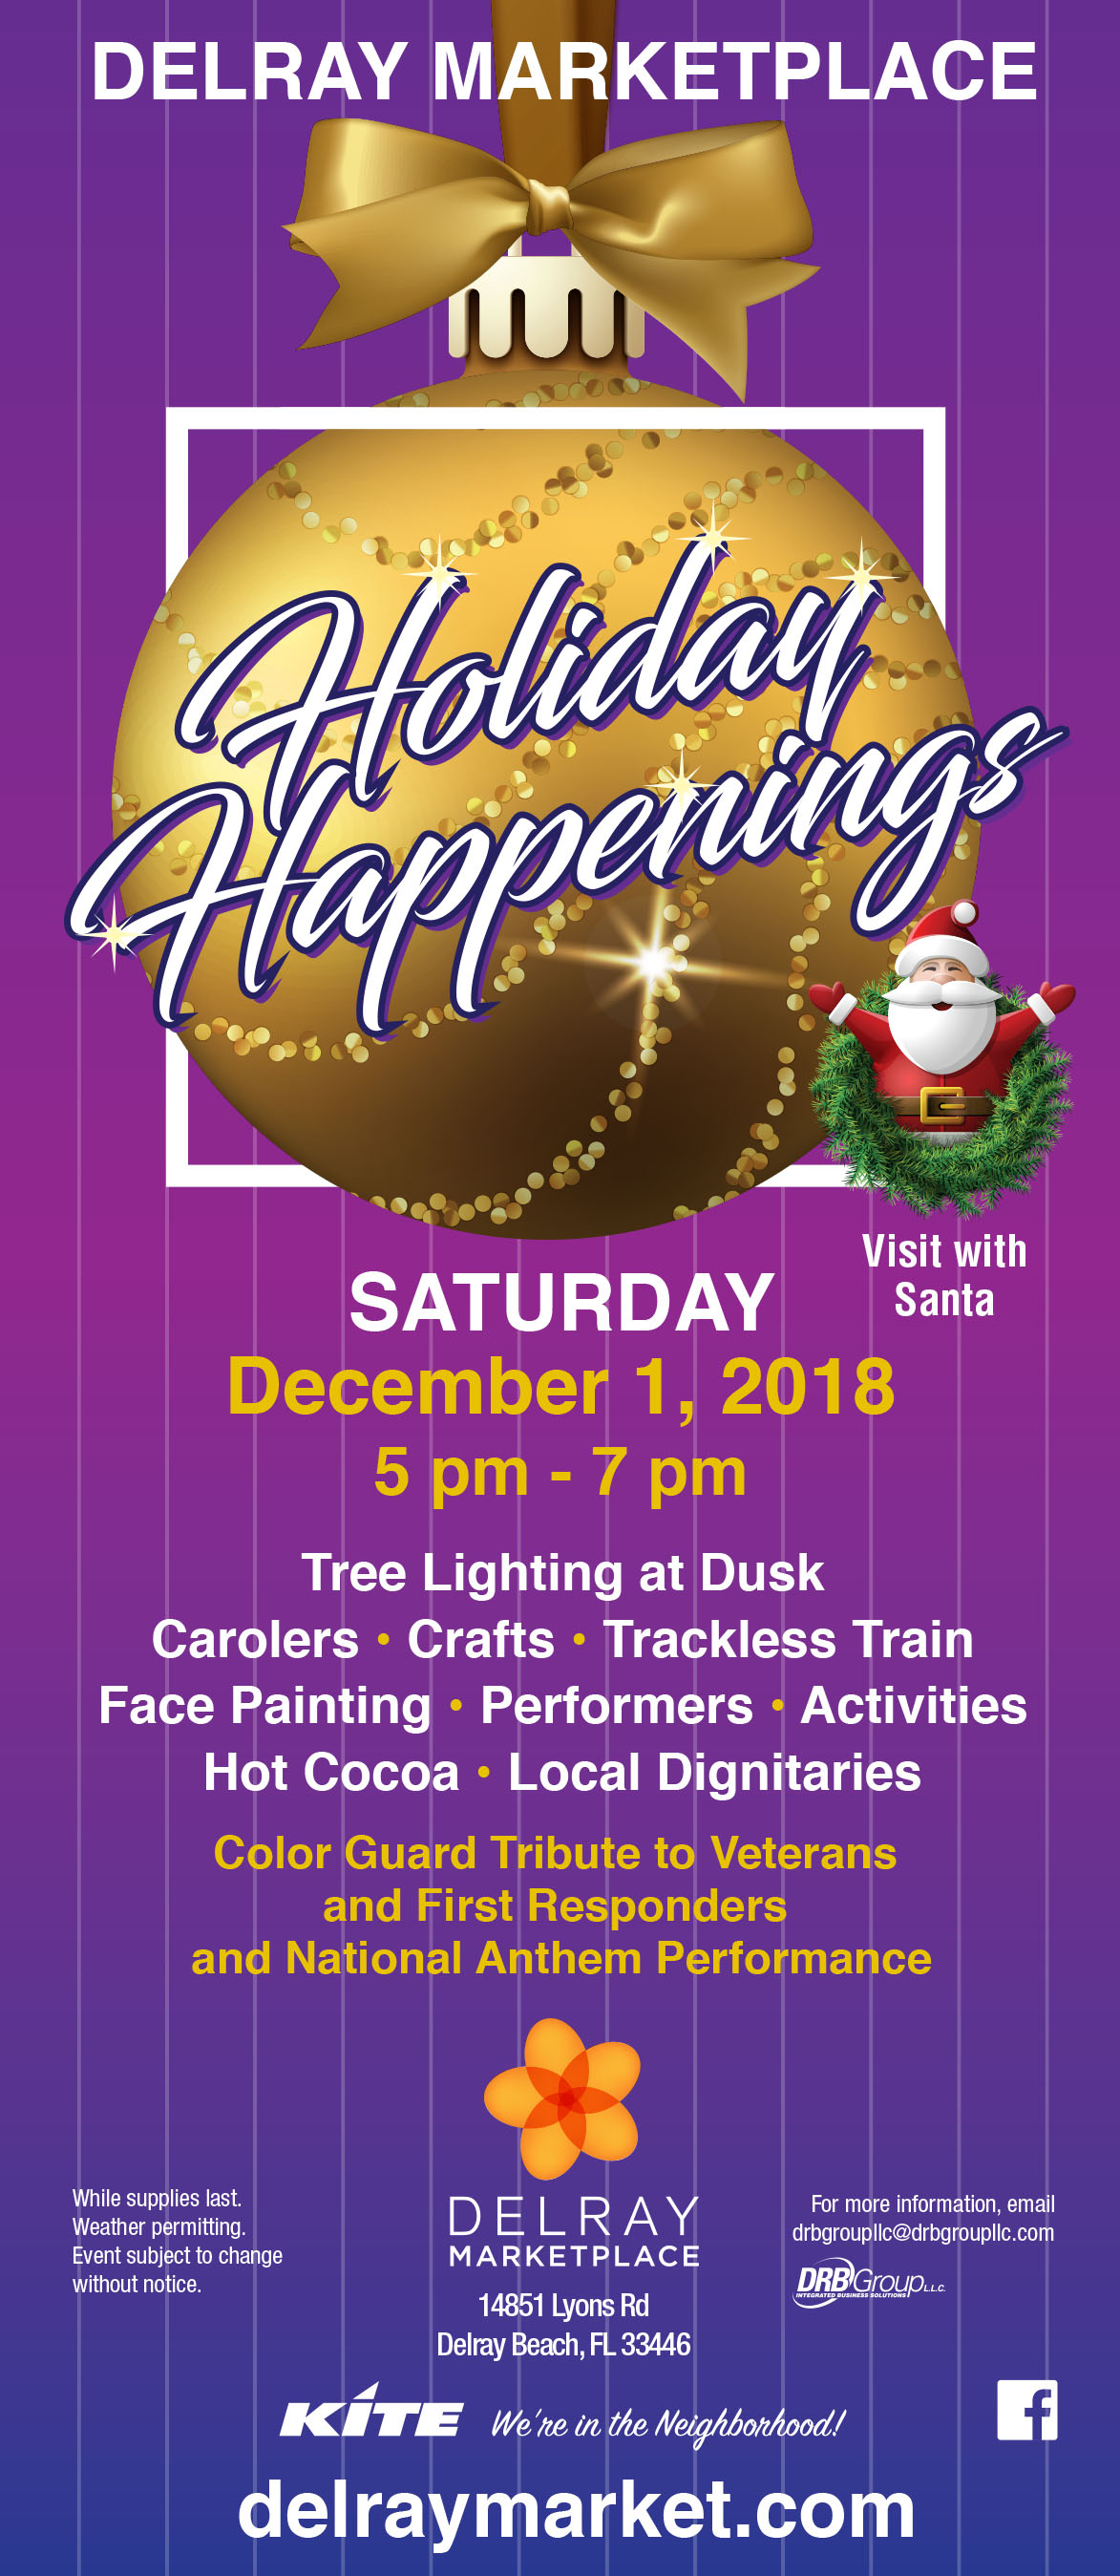 Delray Holiday Happenings Buck Slip.jpg